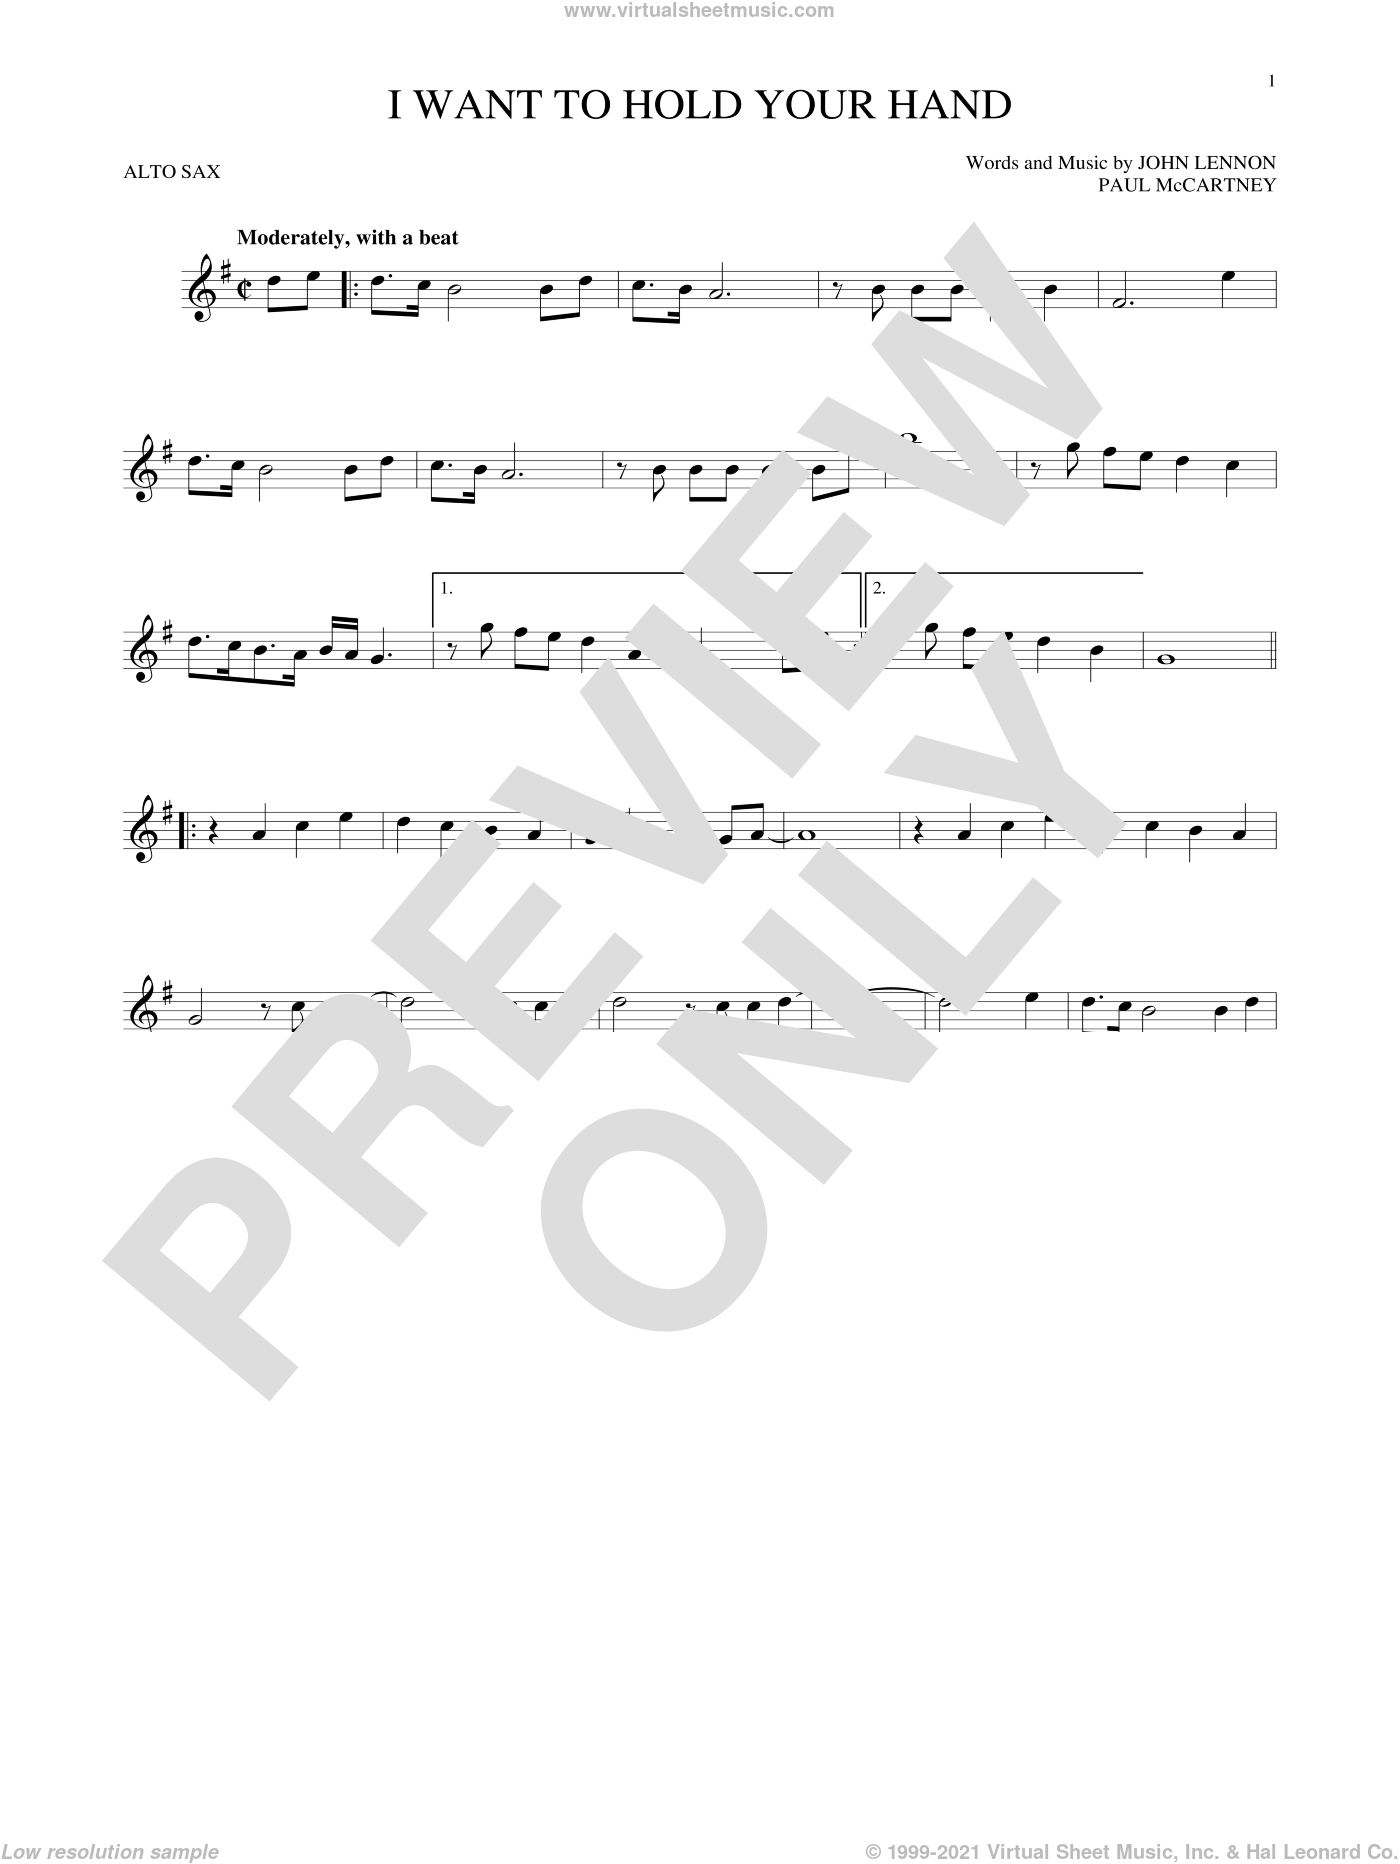 I Want To Hold Your Hand sheet music for alto saxophone solo by The Beatles, John Lennon and Paul McCartney. Score Image Preview.